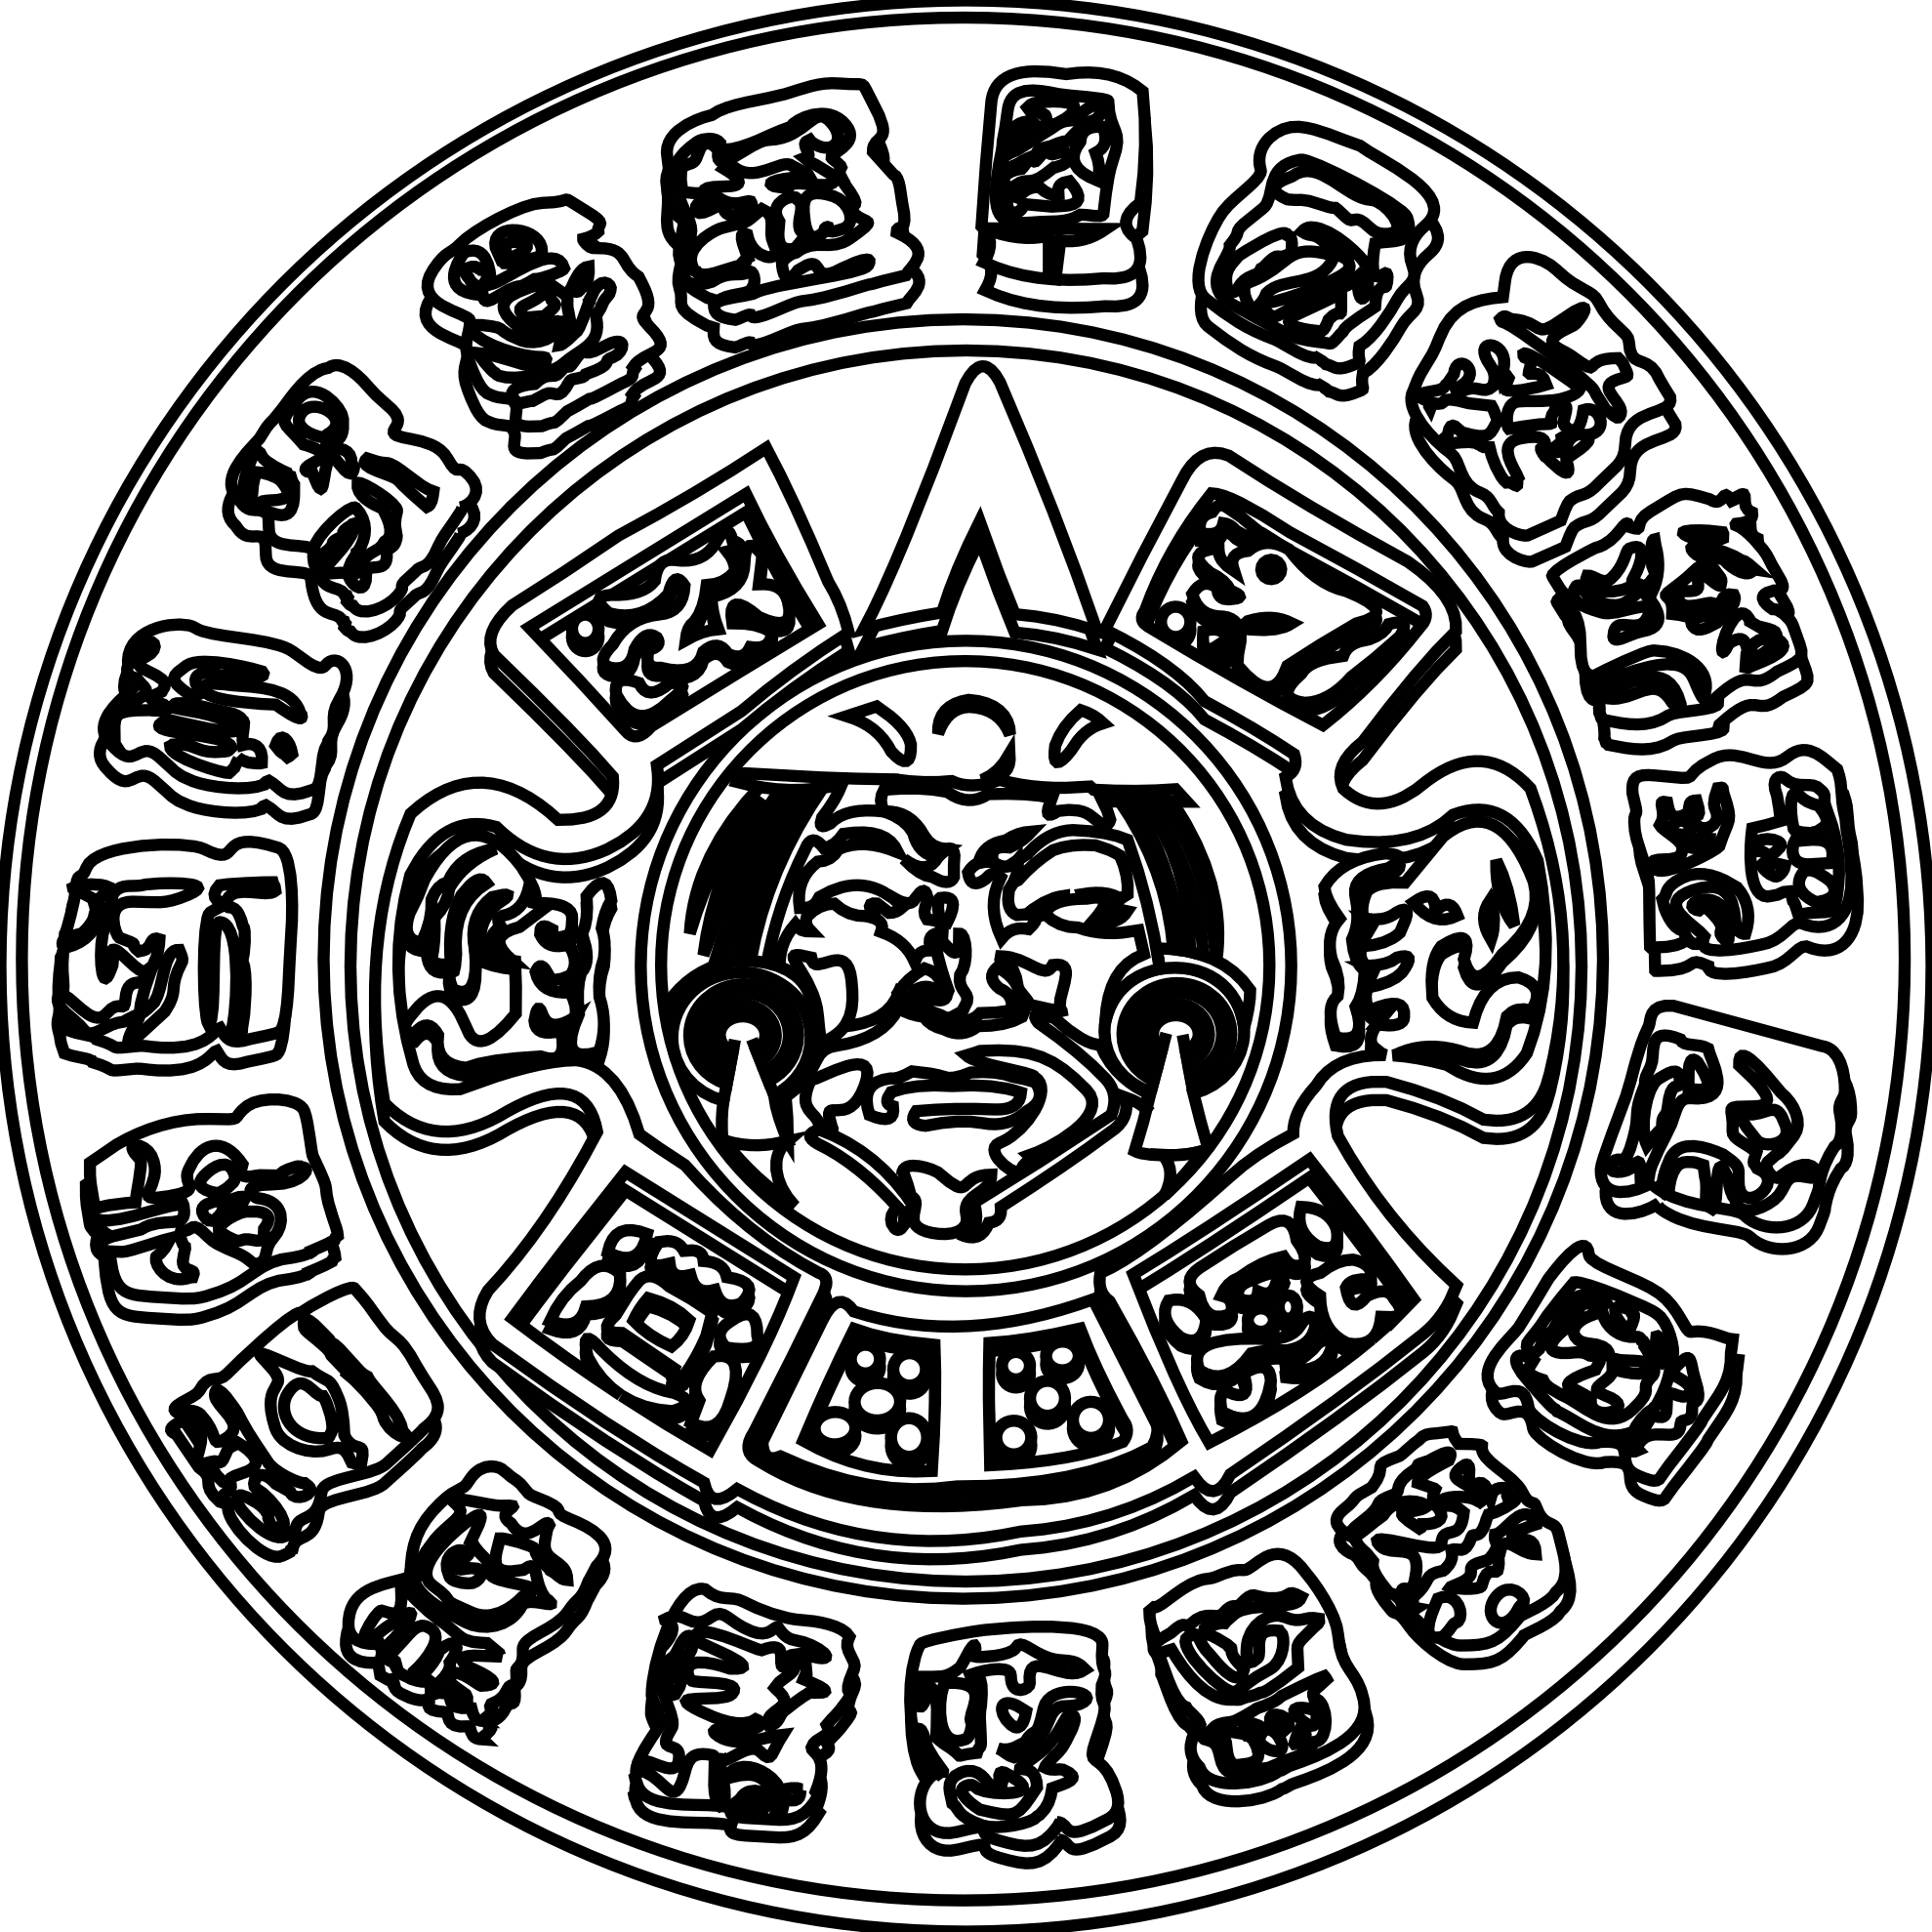 Maia Mayan Sun Black White Line Art Coloring Sheet Colouring Page